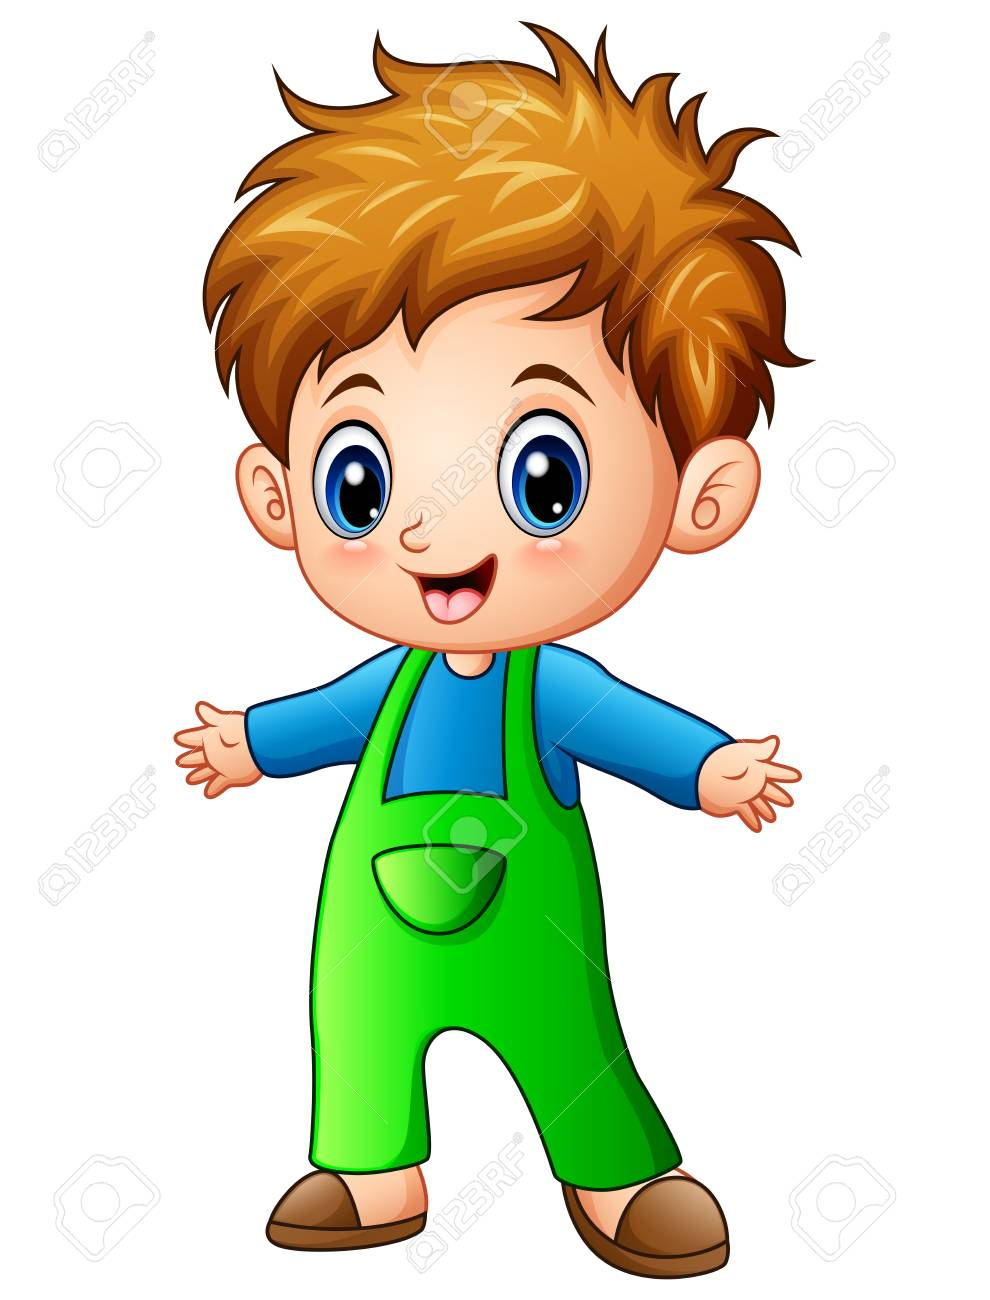 cute little boy cartoon royalty free cliparts vectors and stock rh 123rf com little boy cartoon characters little boy cartoon movie